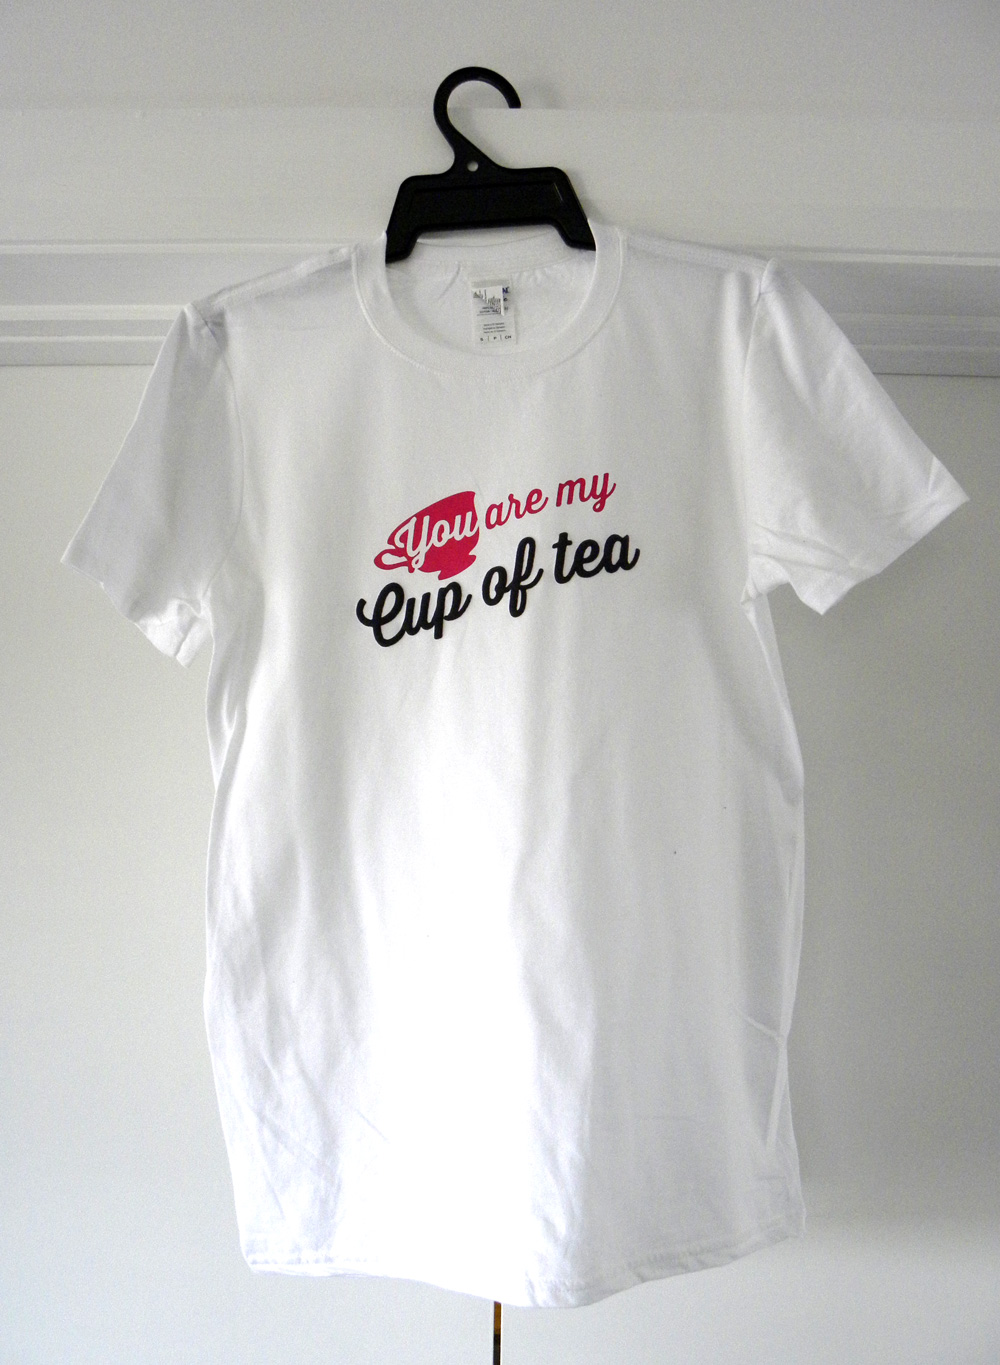 crepe myrtle,custom tshirt design, you are my cup of tea white